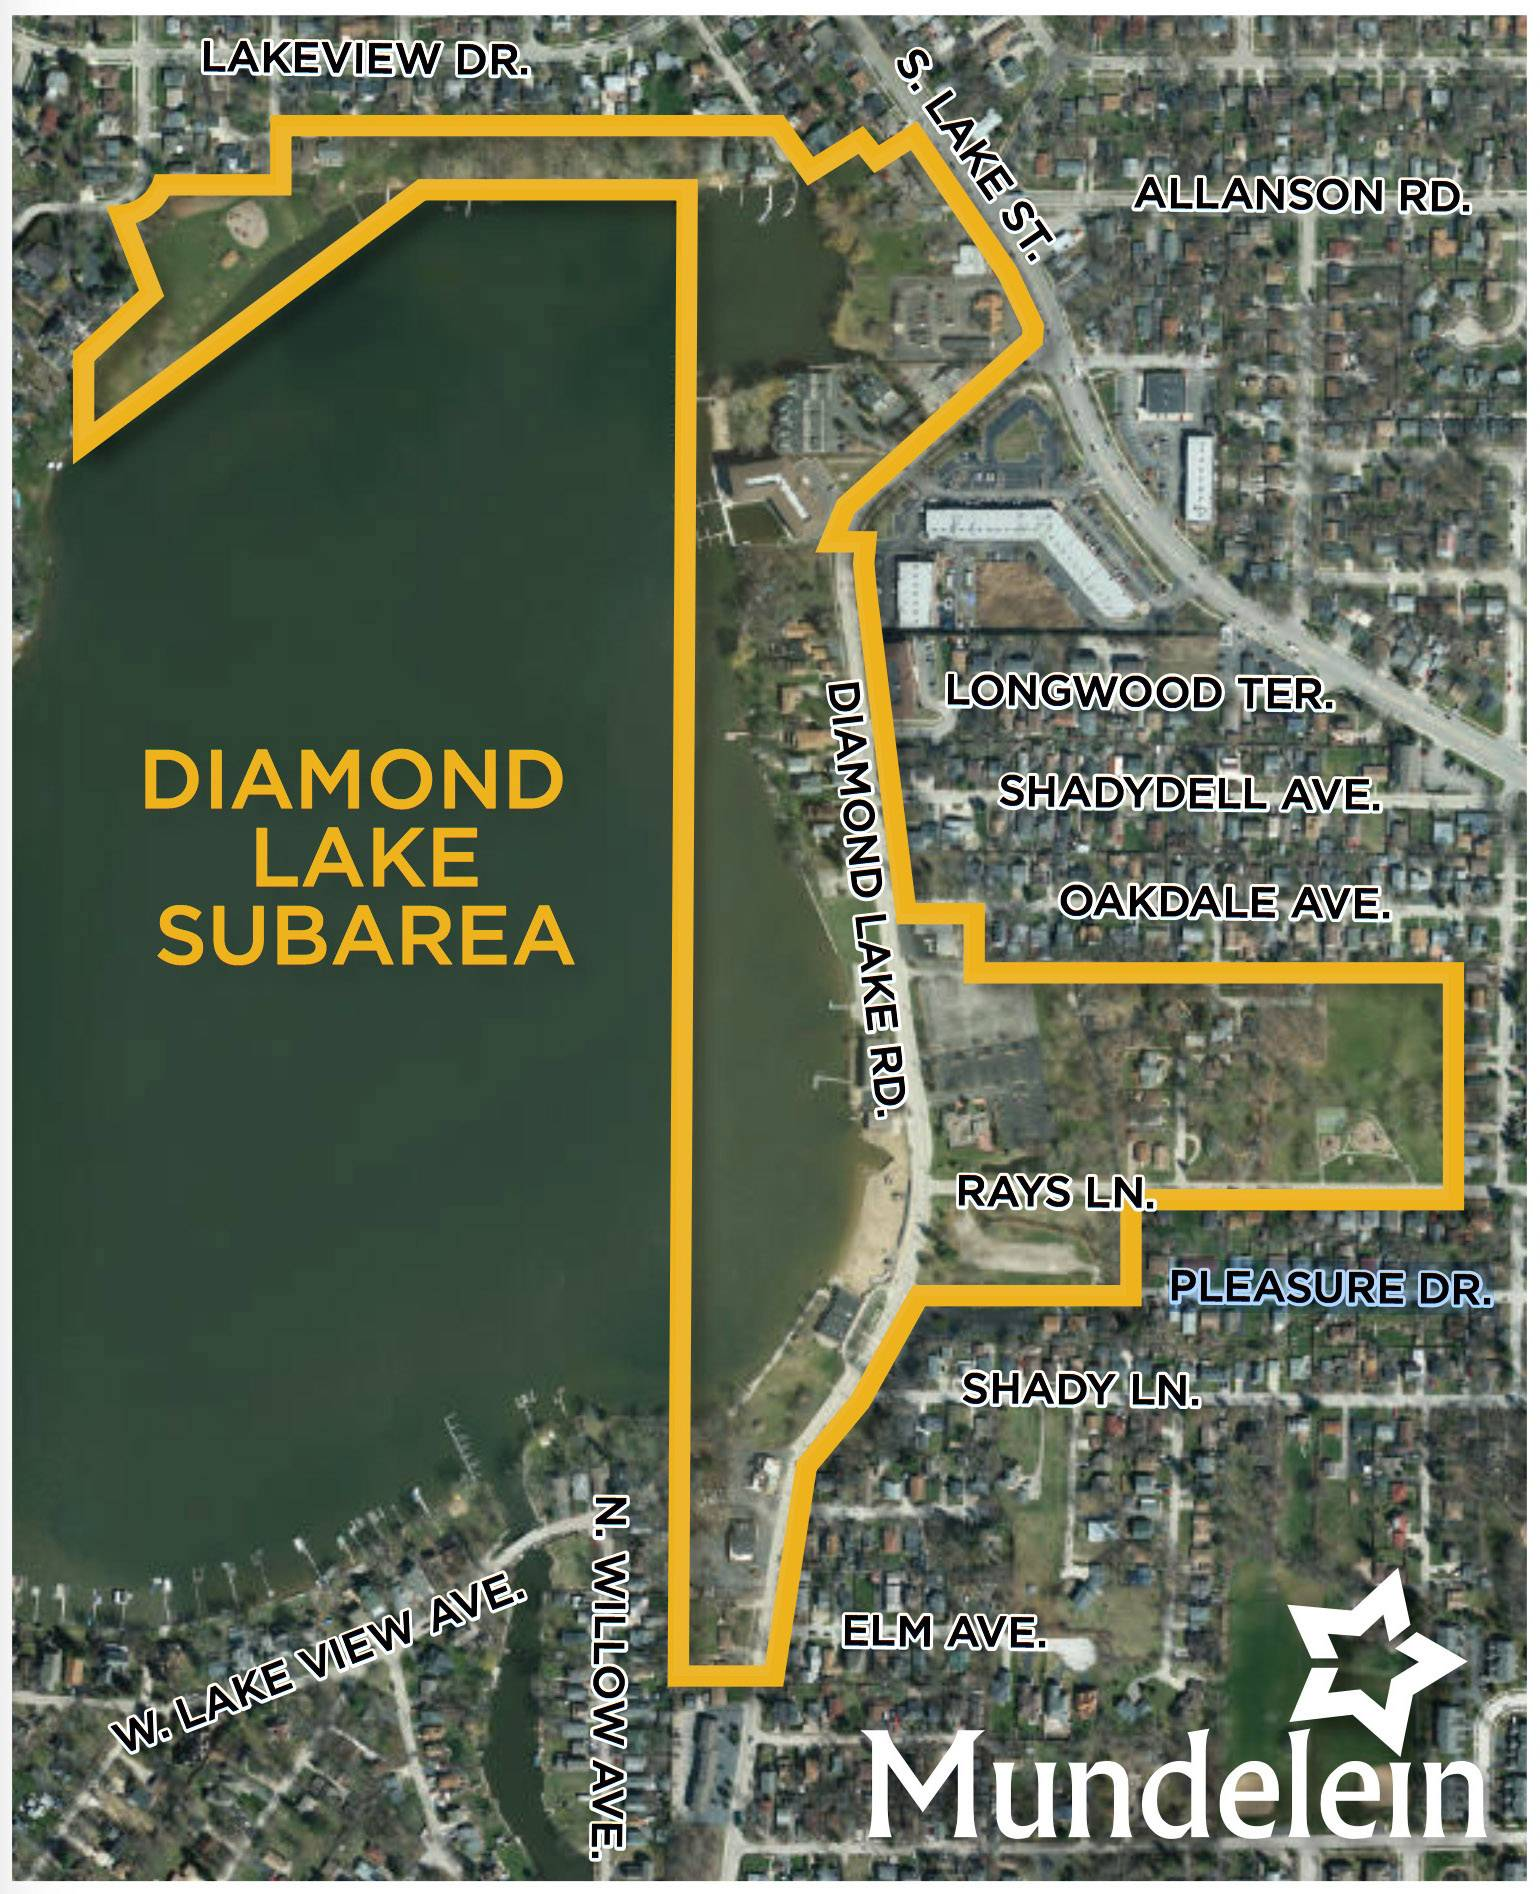 This is the village of Mundelein's comprehensive plan to develop the Diamond Lake subarea.